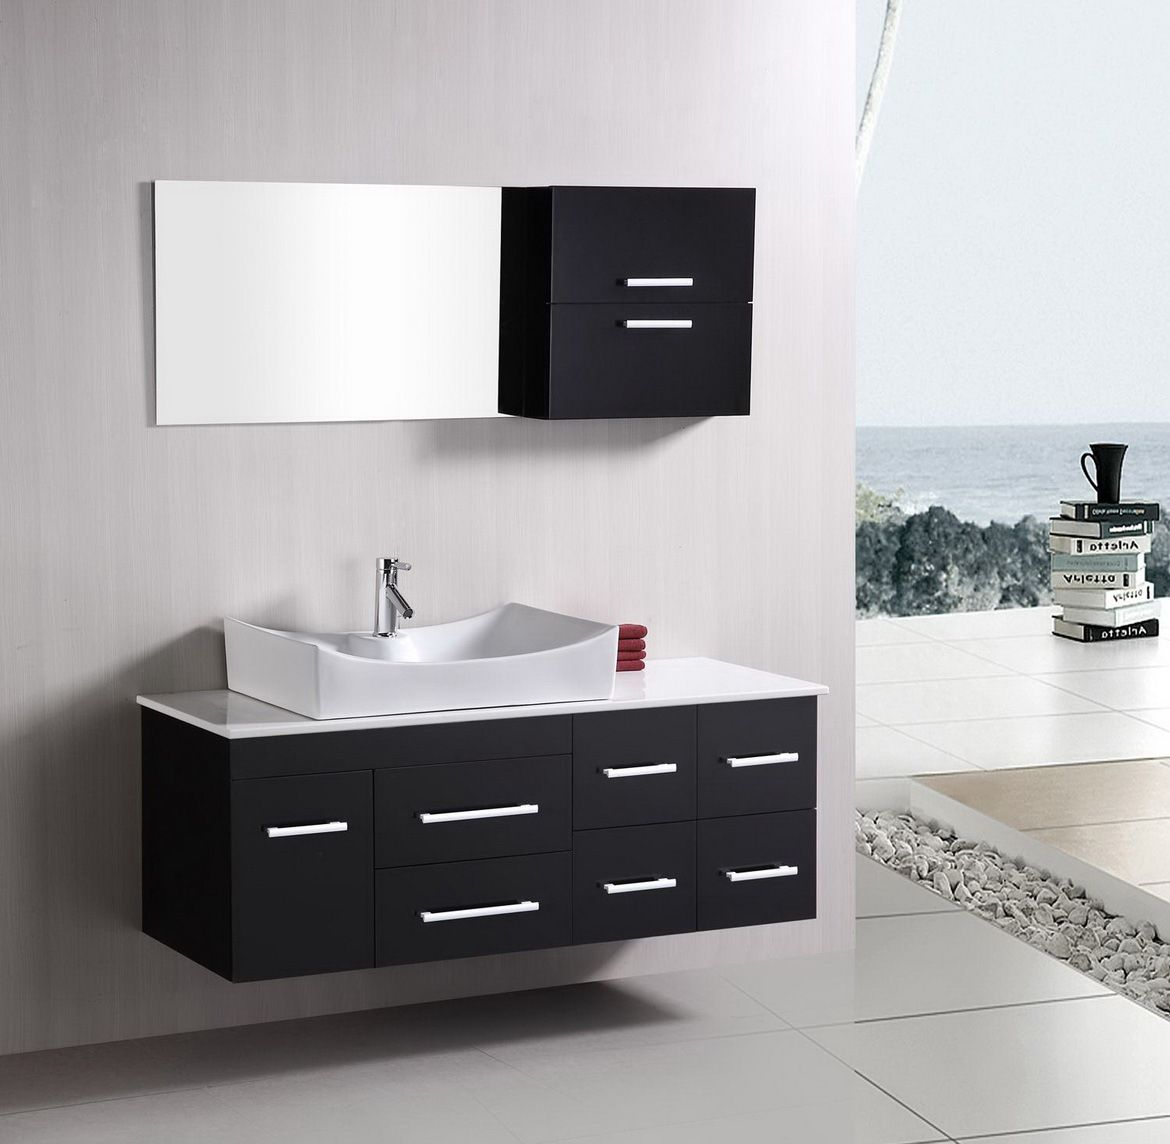 Bathroom Vanity Designs bathroom vanities - making bathrooms a place to relax